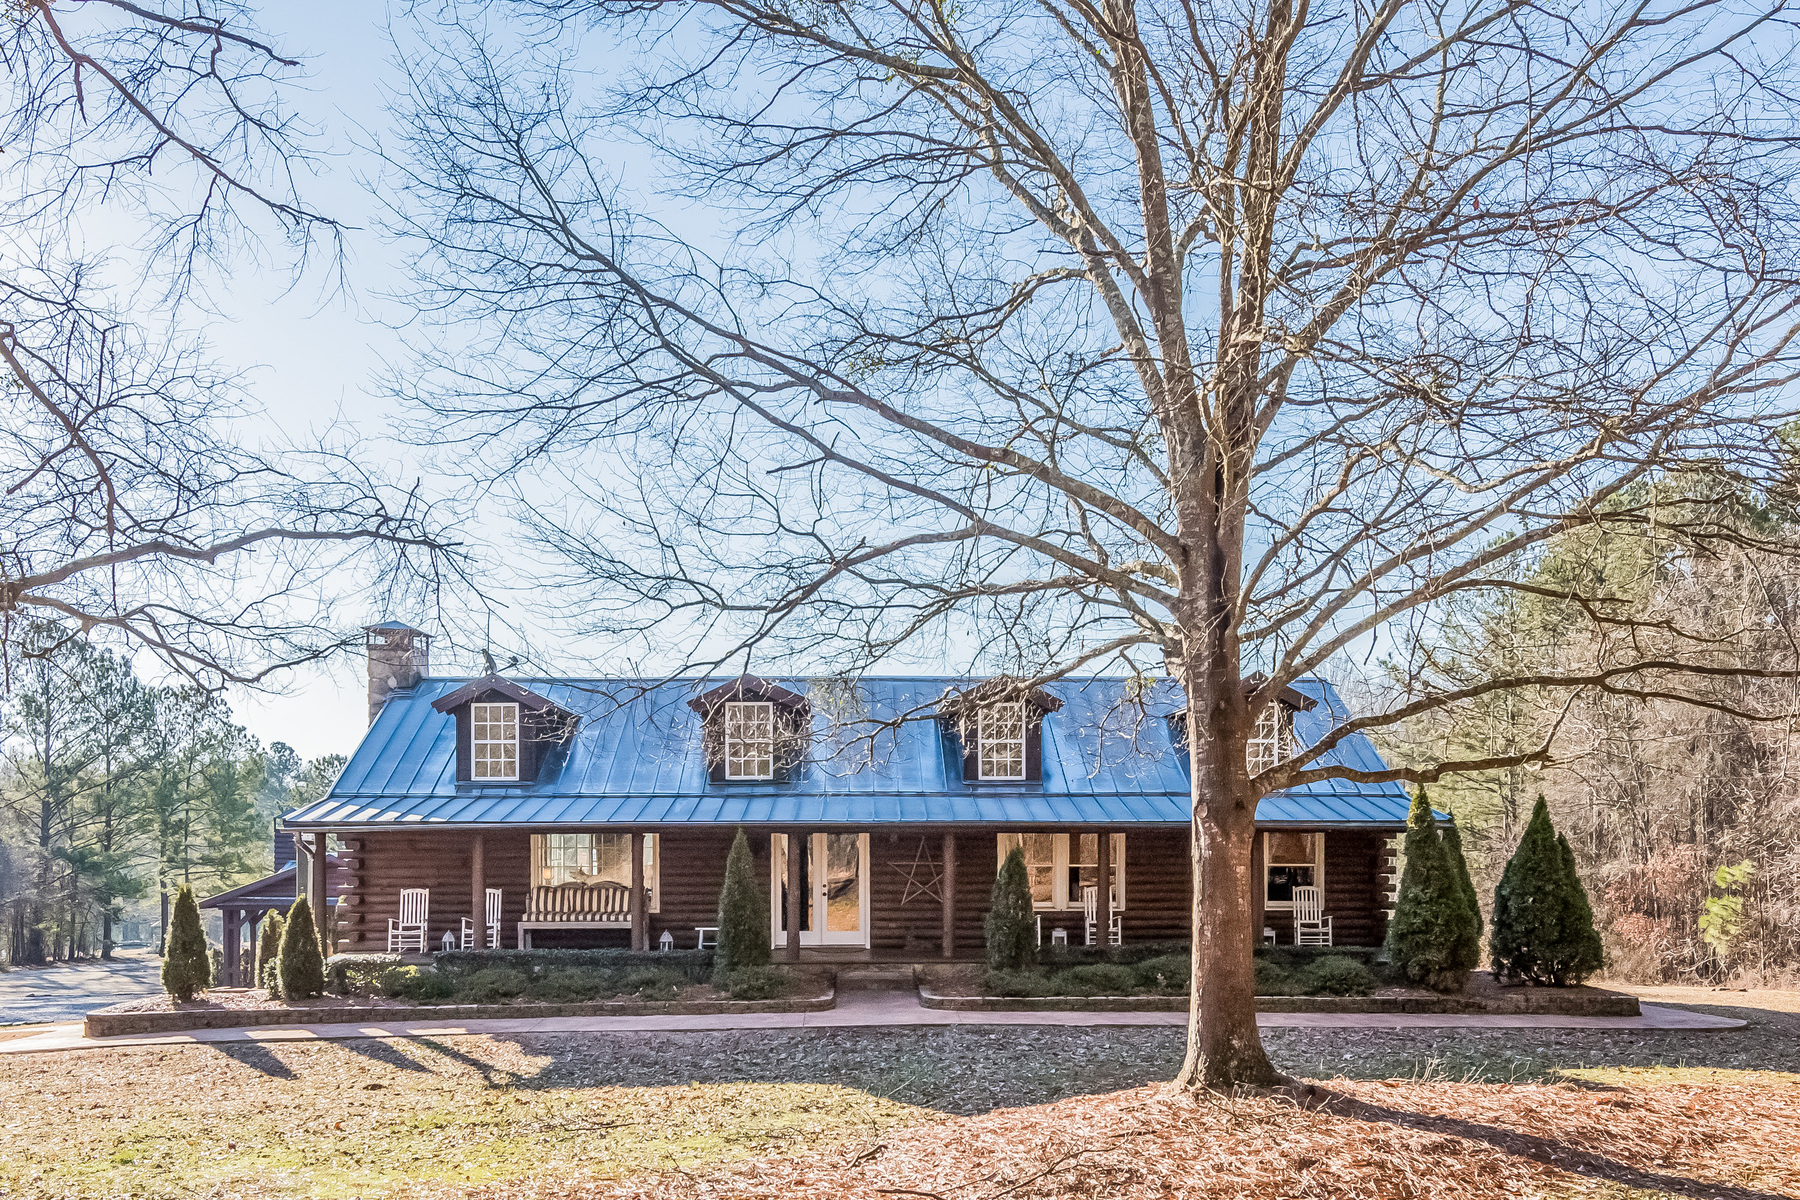 一戸建て のために 売買 アット Stunning Equestrian Property With Income Potential 12000 Hutcheson Ferry Road Chattahoochee Hills, ジョージア 30268 アメリカ合衆国